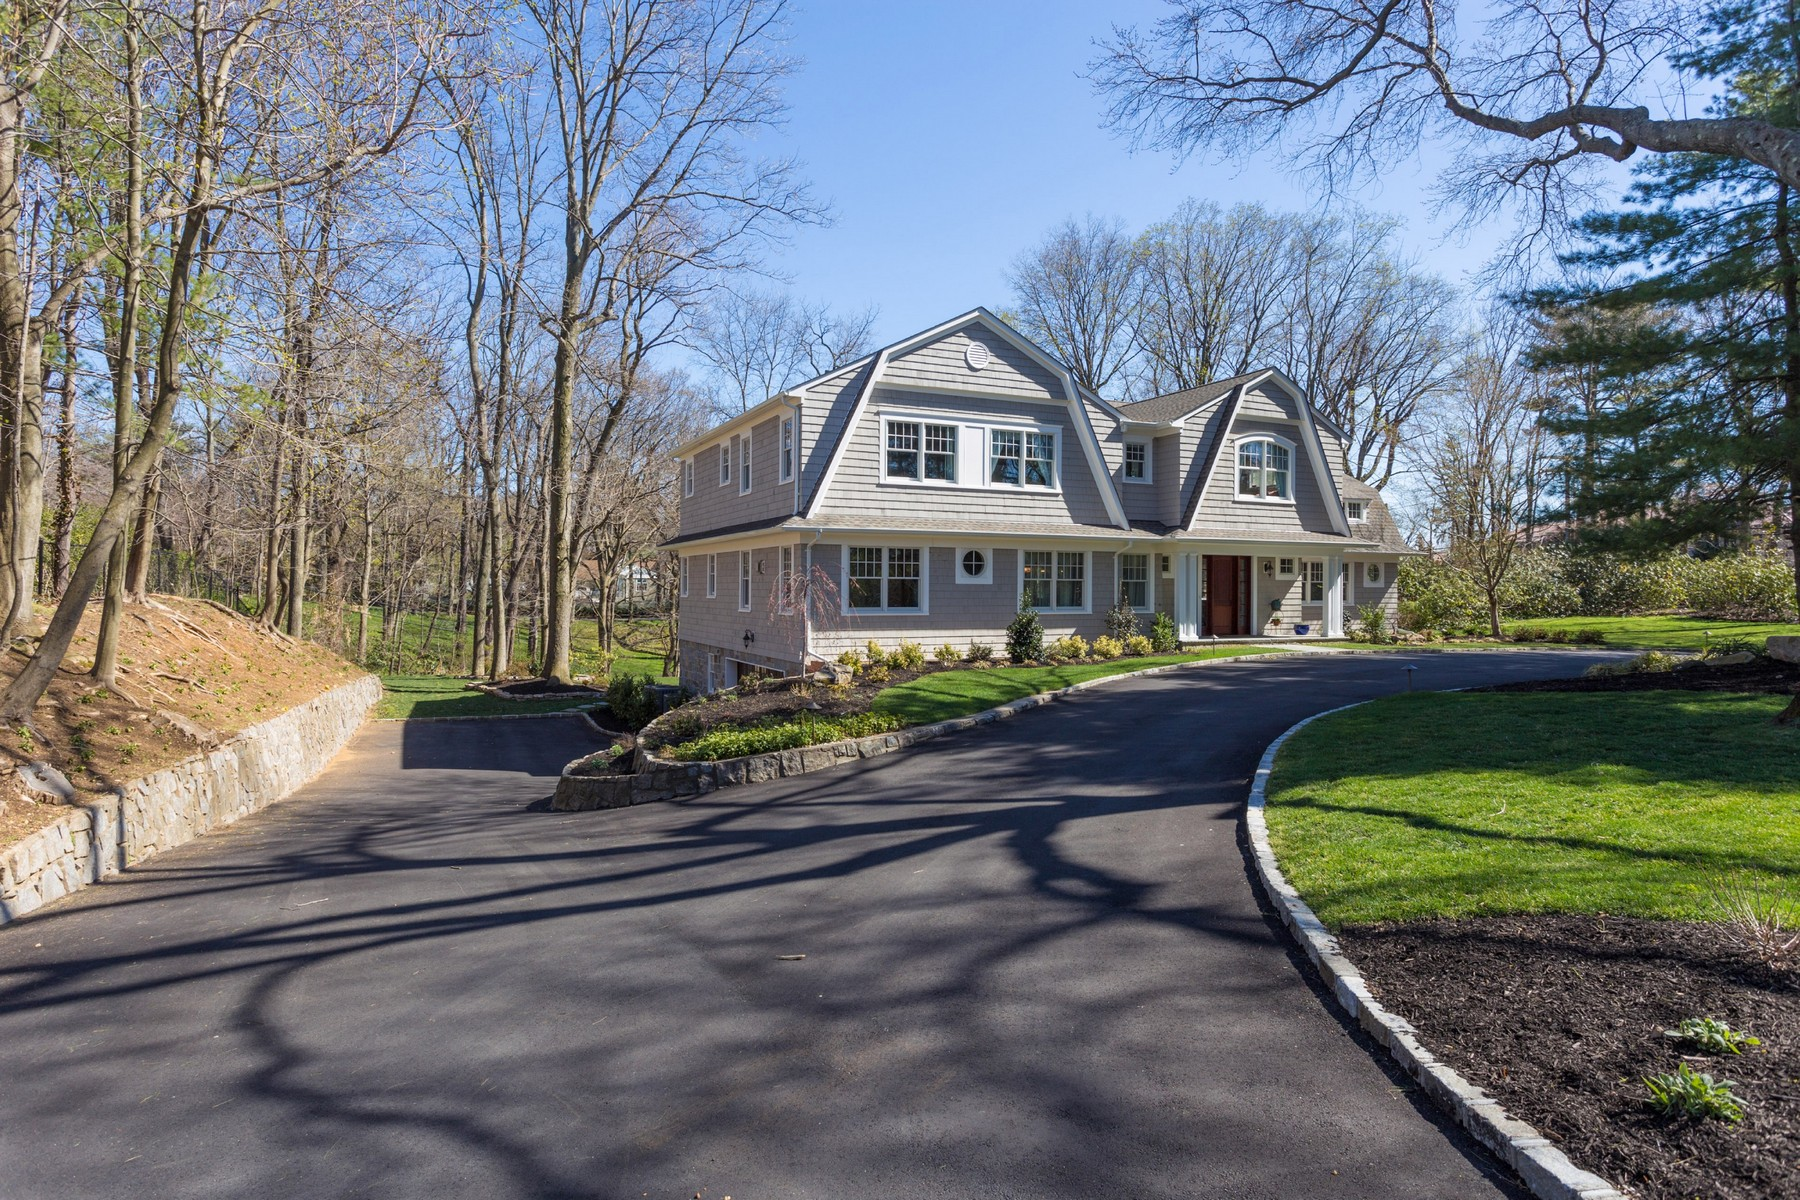 Single Family Home for Sale at Colonial 1 Sloanes Beach Rd Sands Point, New York, 11050 United States